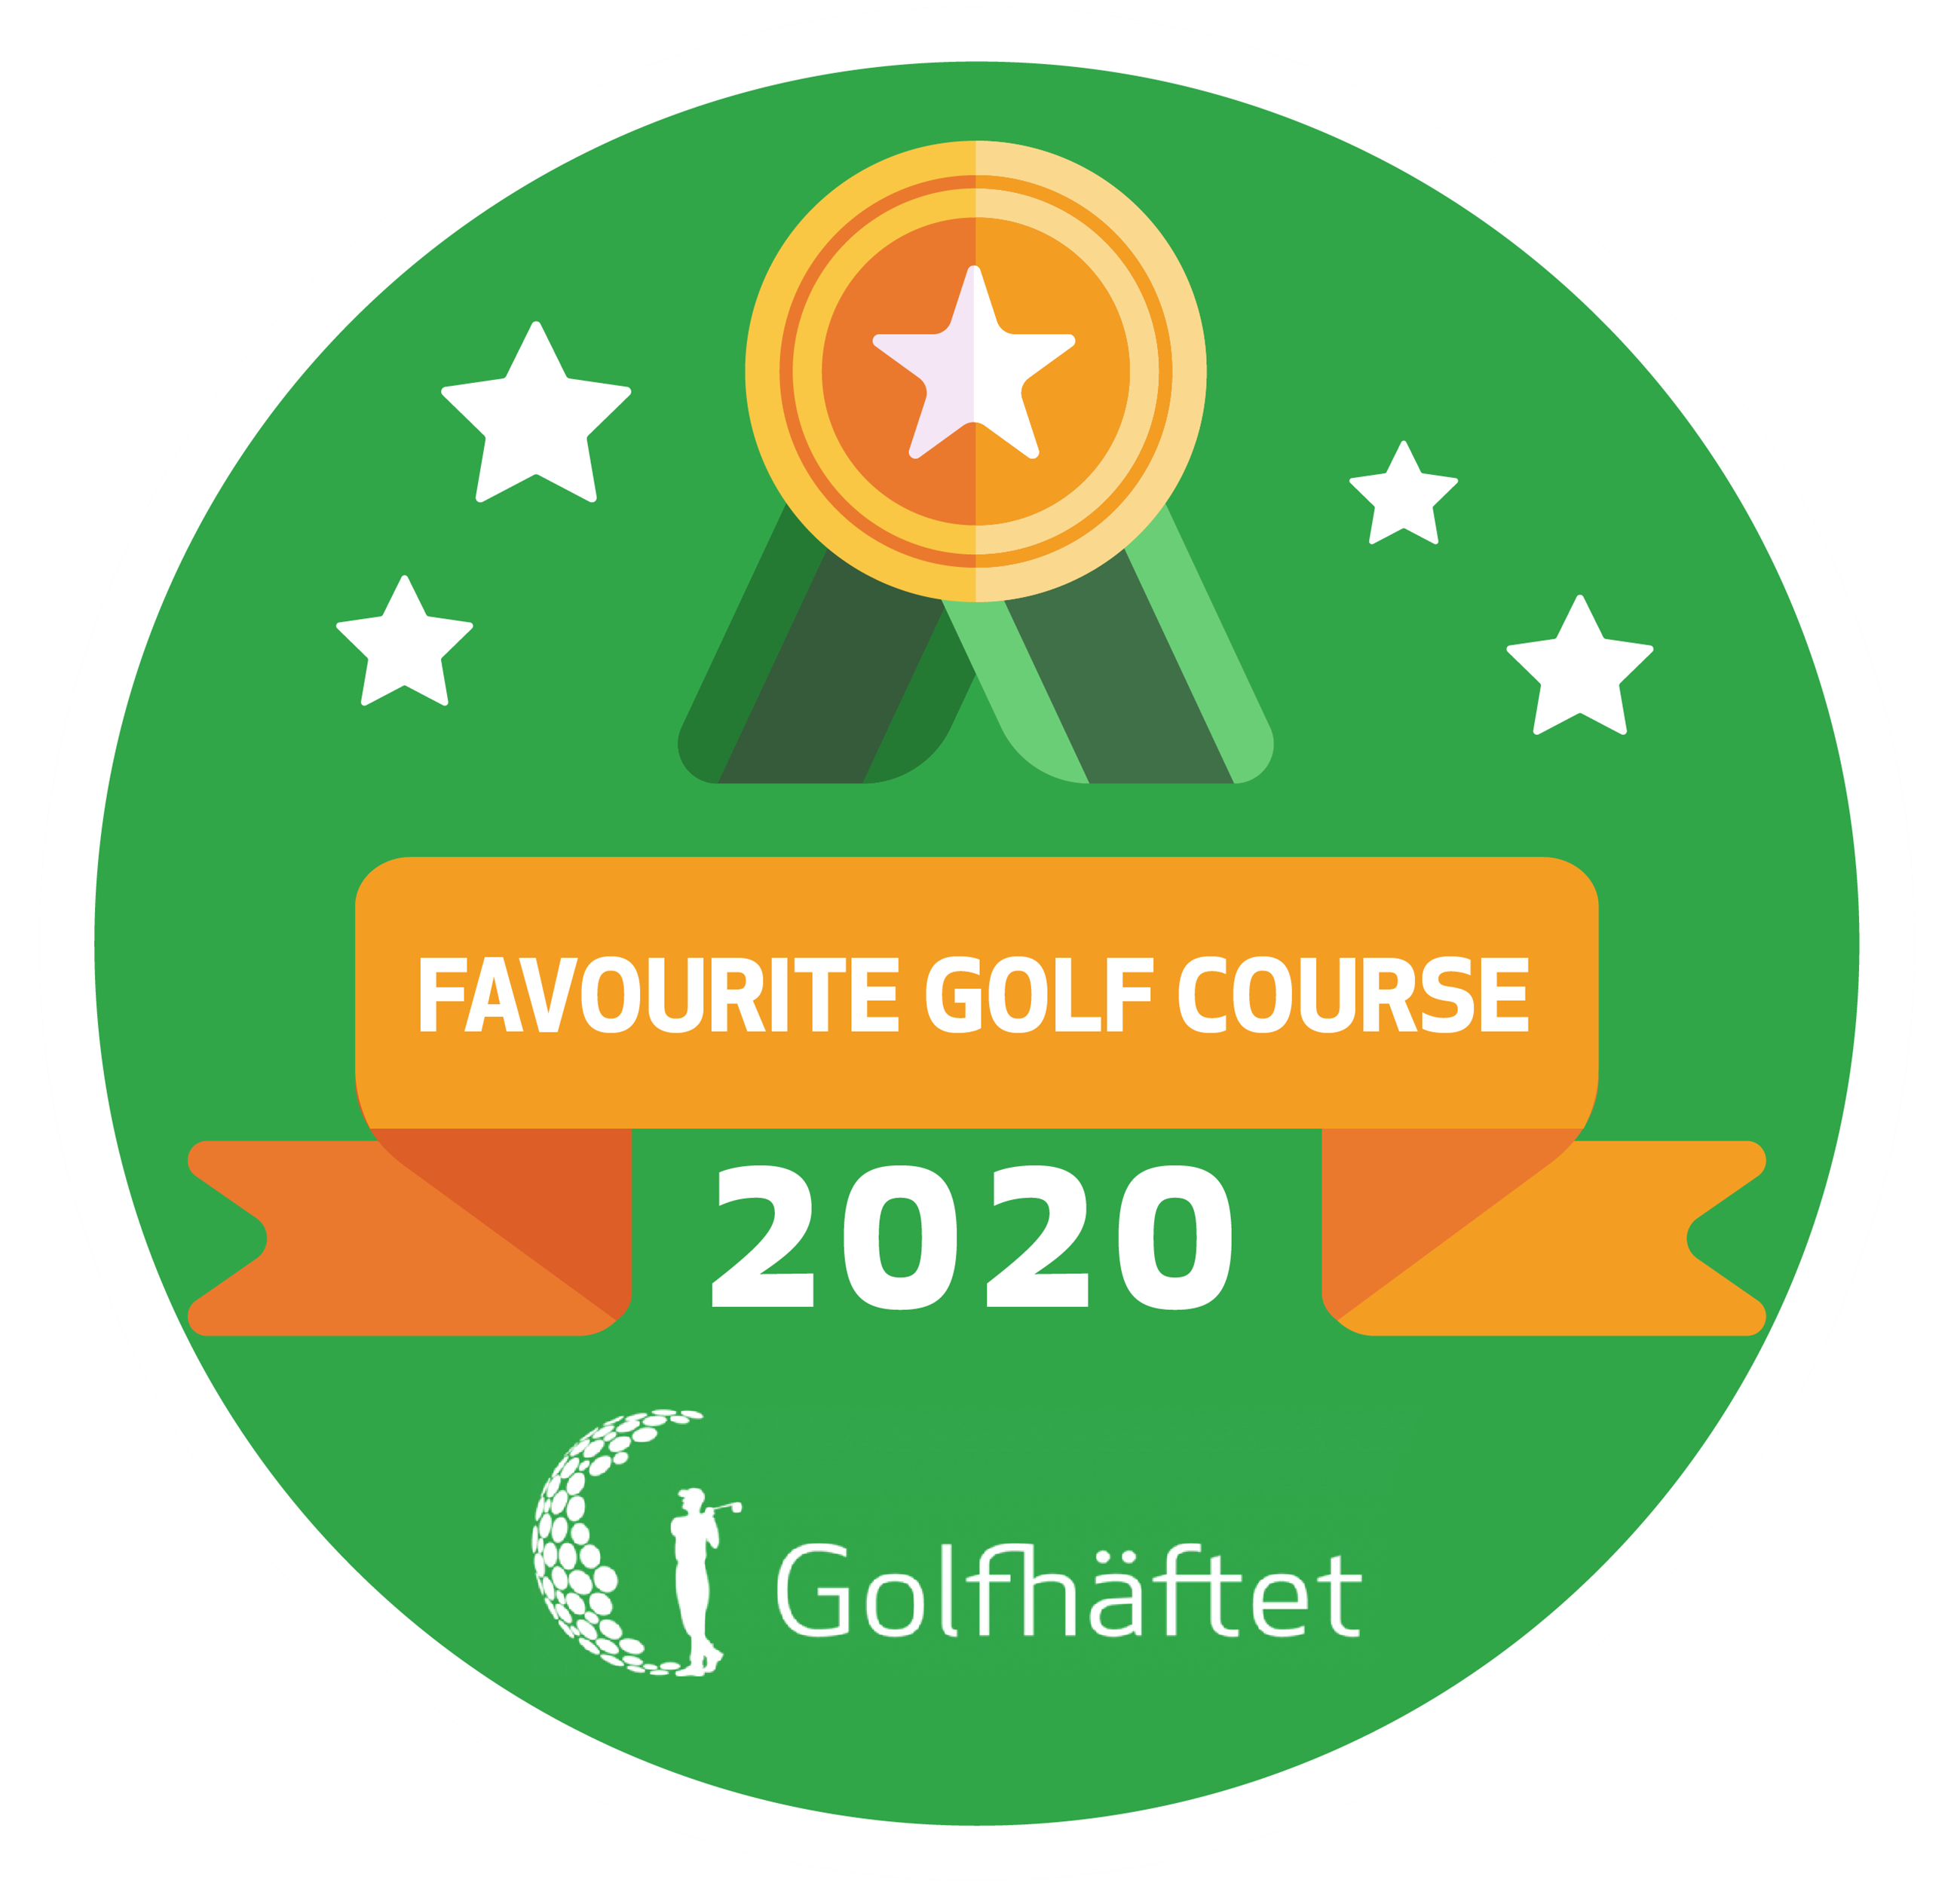 gh_awards_favourite_golf_course_nominerad